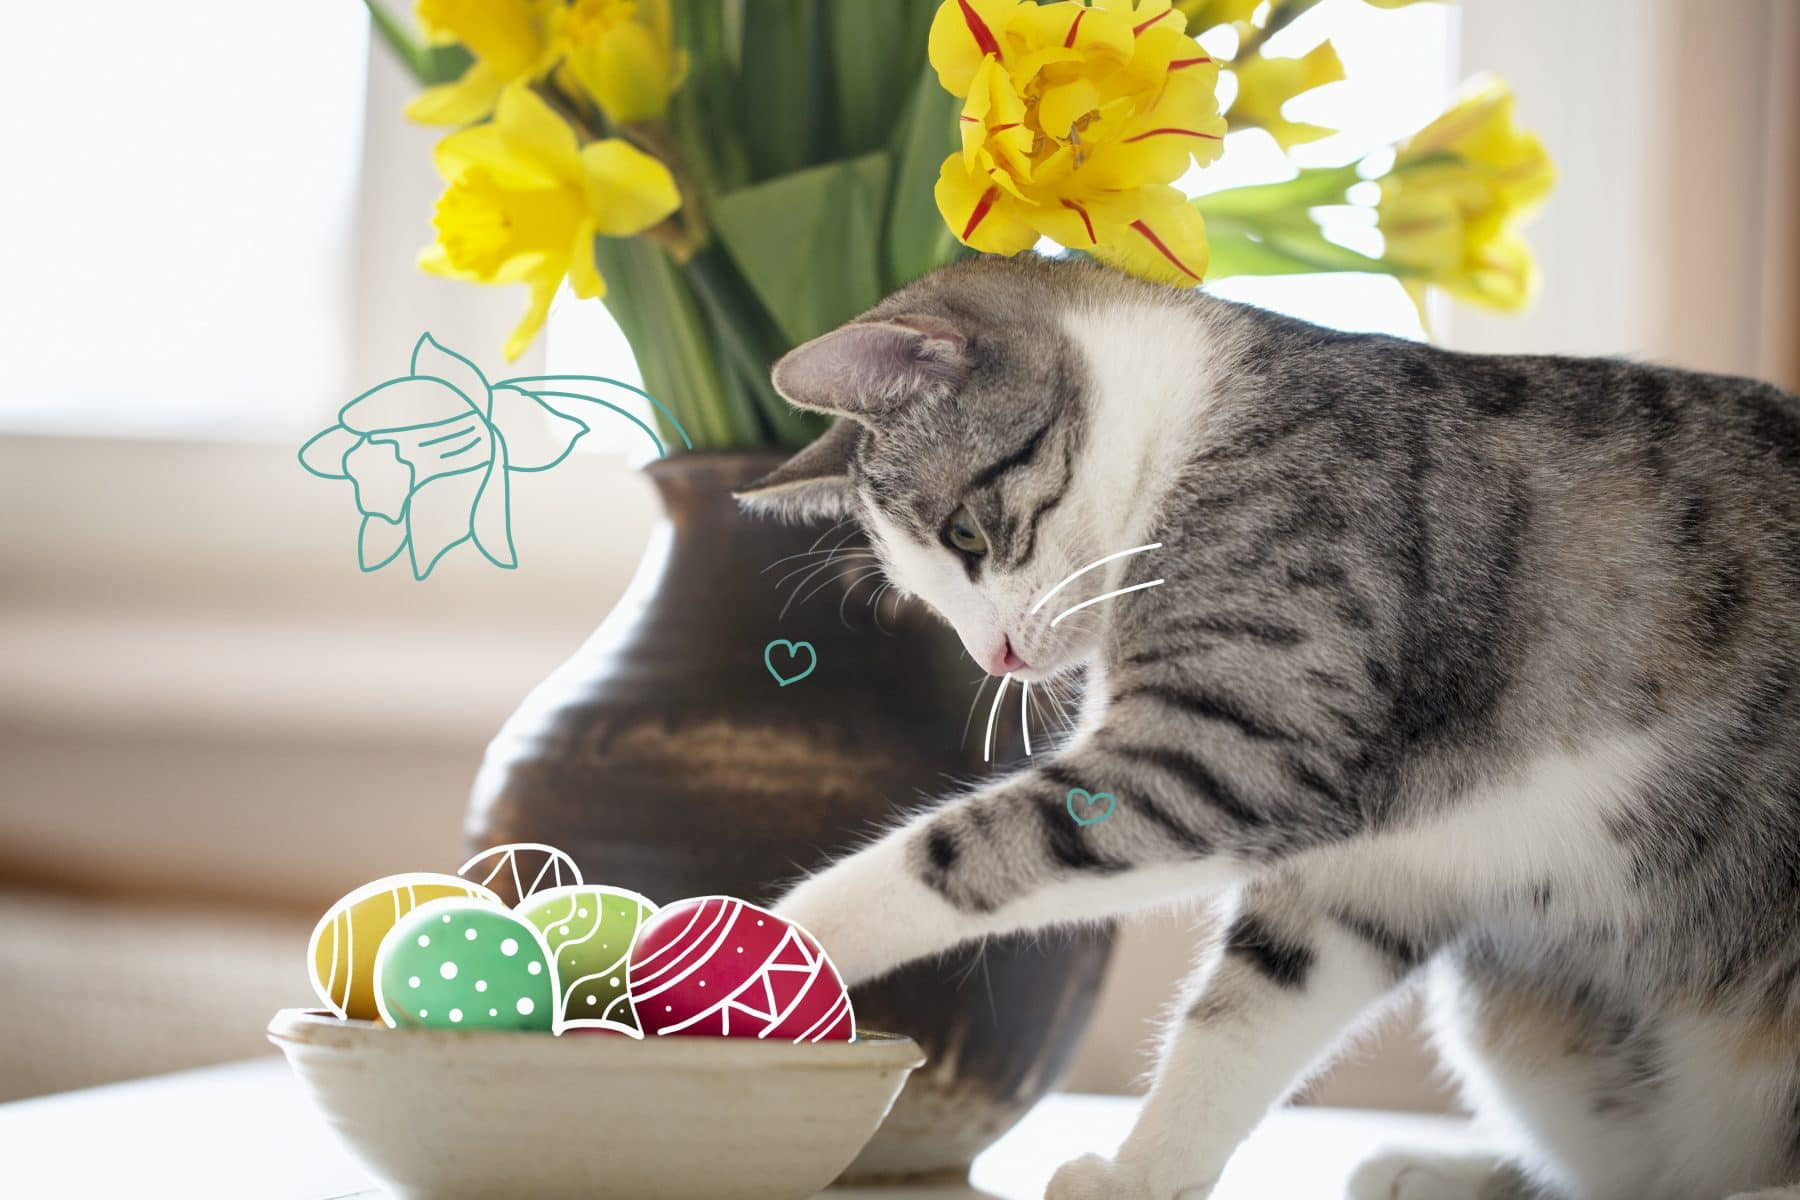 Easter pet treats - a cat with some coloured Easter eggs. Easter treats for pets.